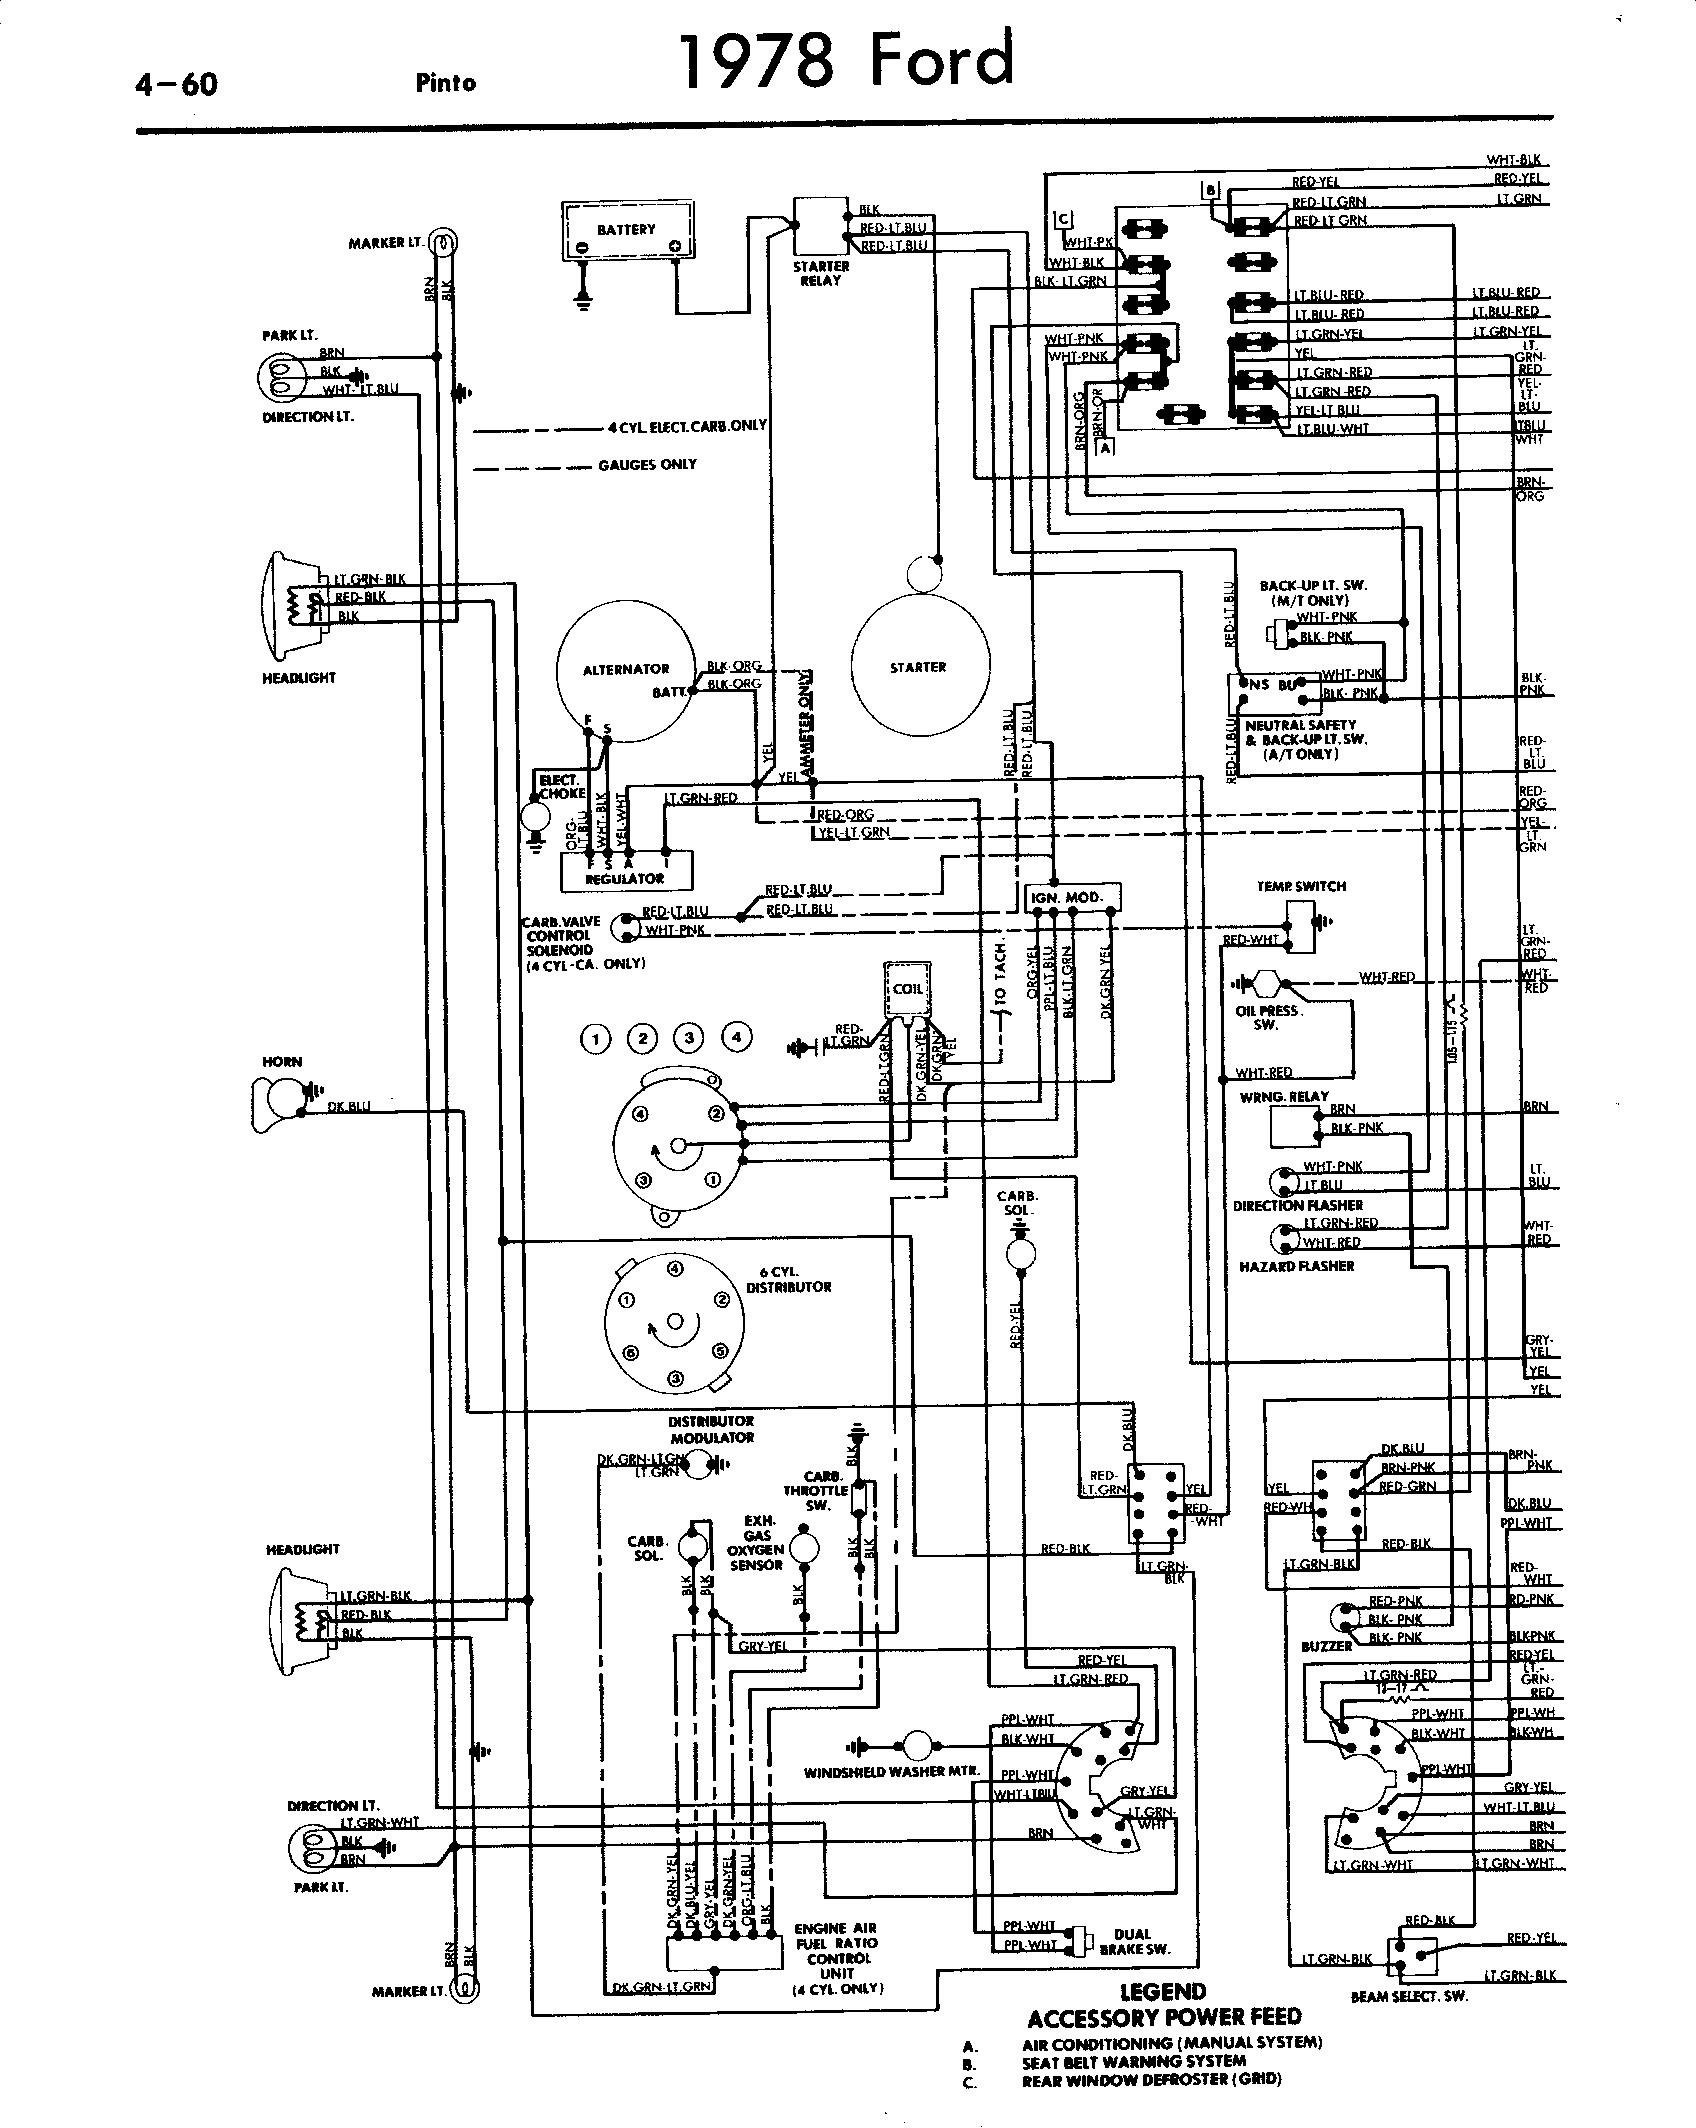 Ford Pinto Schematic Wire Center Chevette Wiring Diagram Circuit 6 0 Engine My Rh Detoxicrecenze Com Chevy Amc Pacer